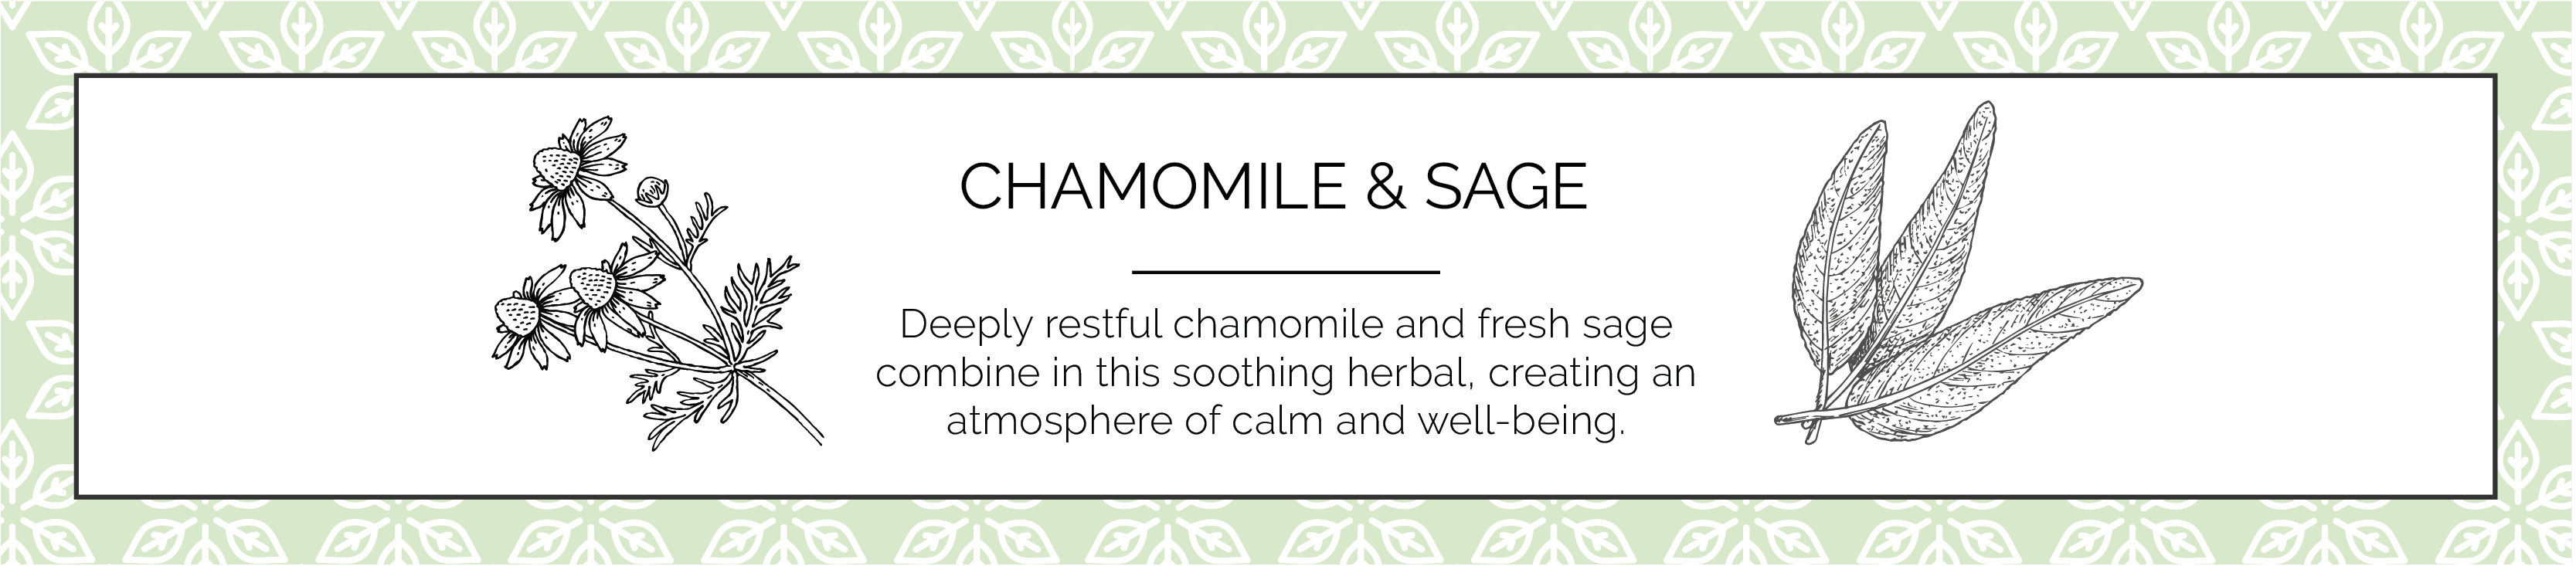 Camomile and Sage Candle Fragrance